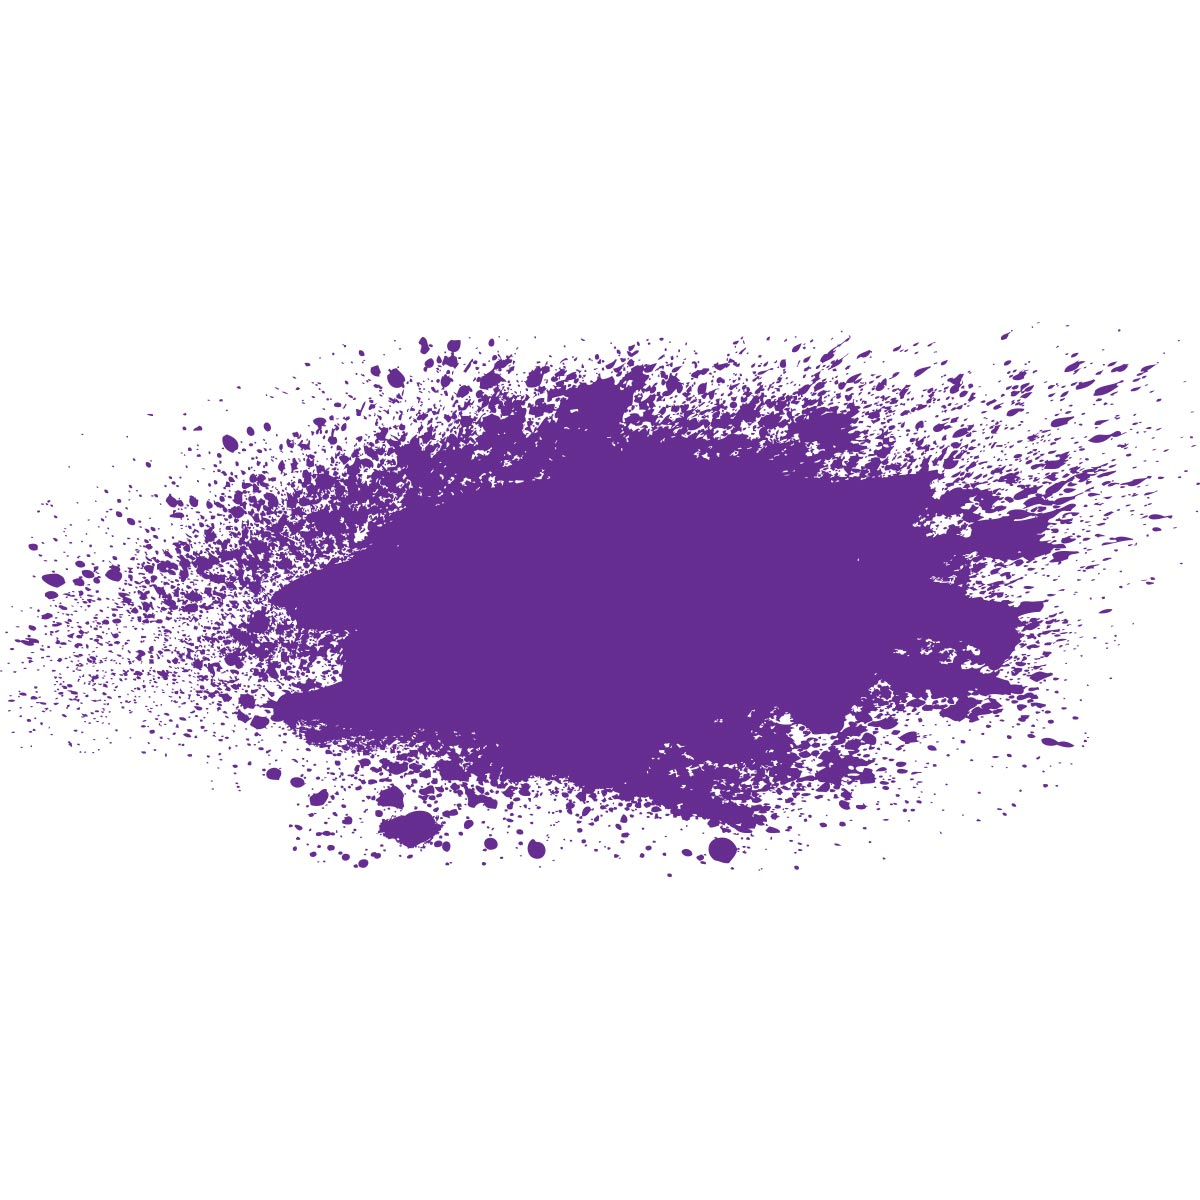 FolkArt ® Stencil Spray™ Acrylic Paint - Purple, 2 oz.